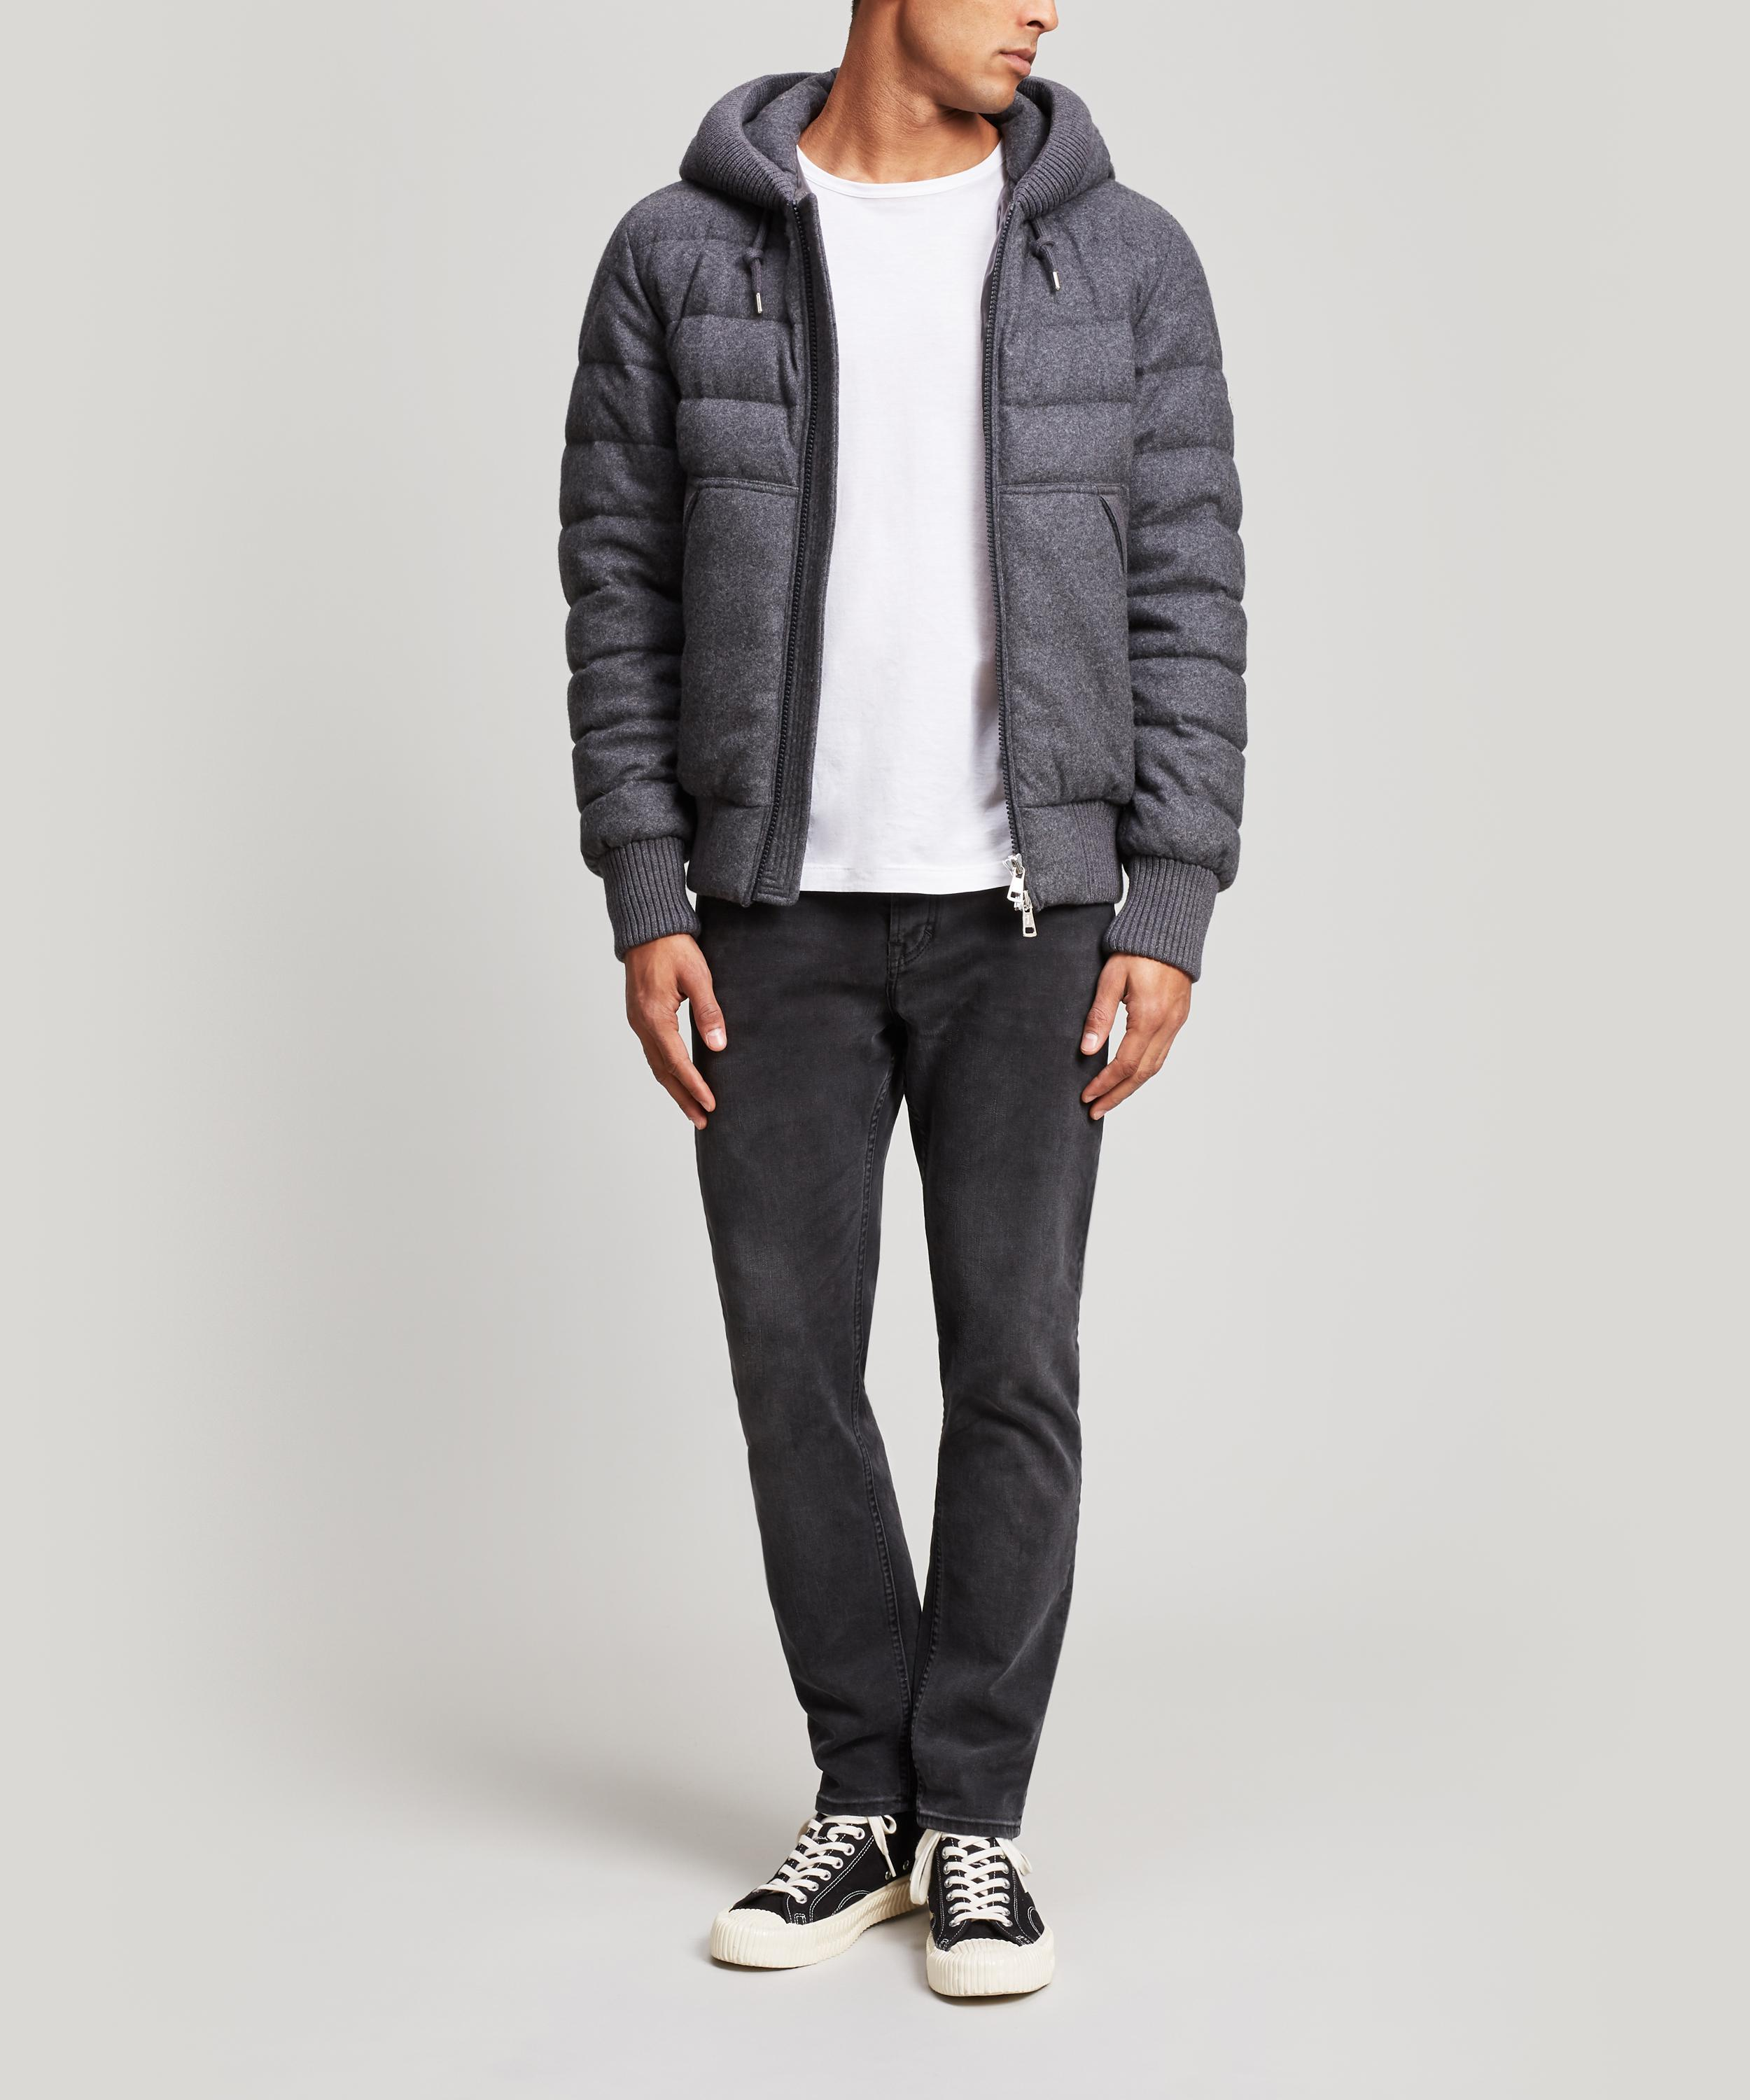 4f643cfb4 Lyst - Moncler Renoir Quilted Wool And Cashmere-blend Jacket in Gray ...